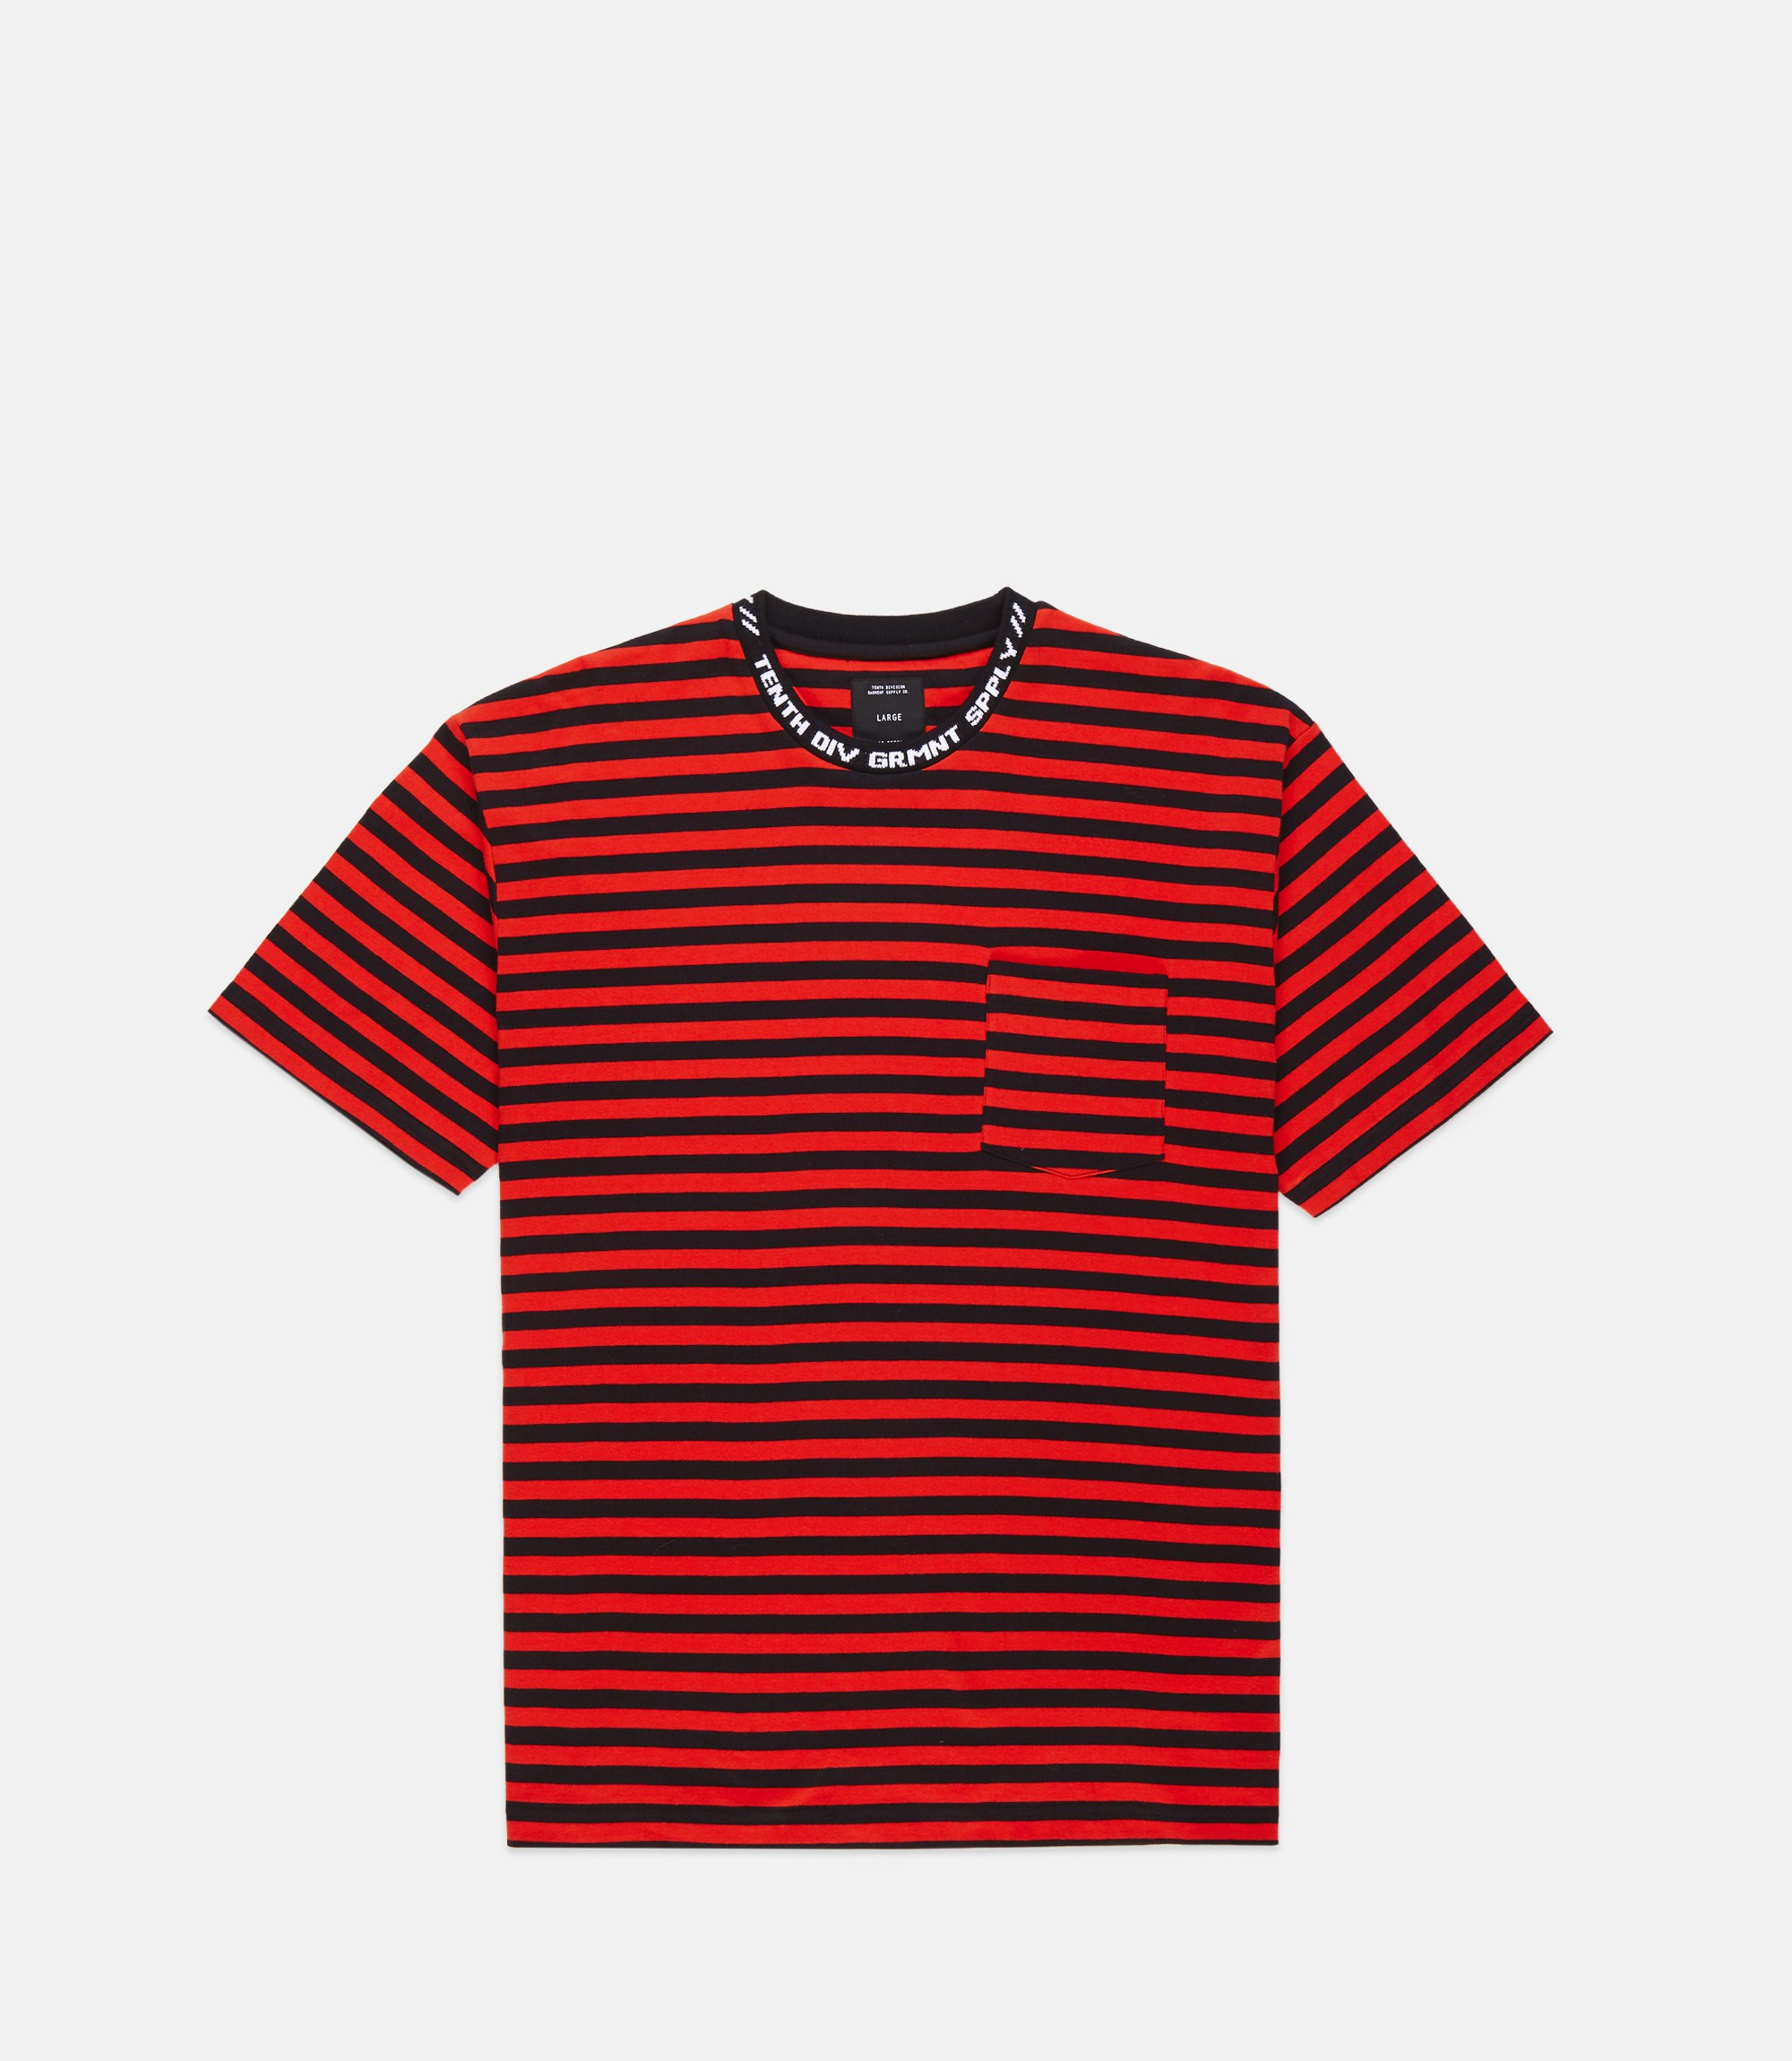 182TD4208_FOREIGNER-YD-STRIPED-TEE_RED_FRONT